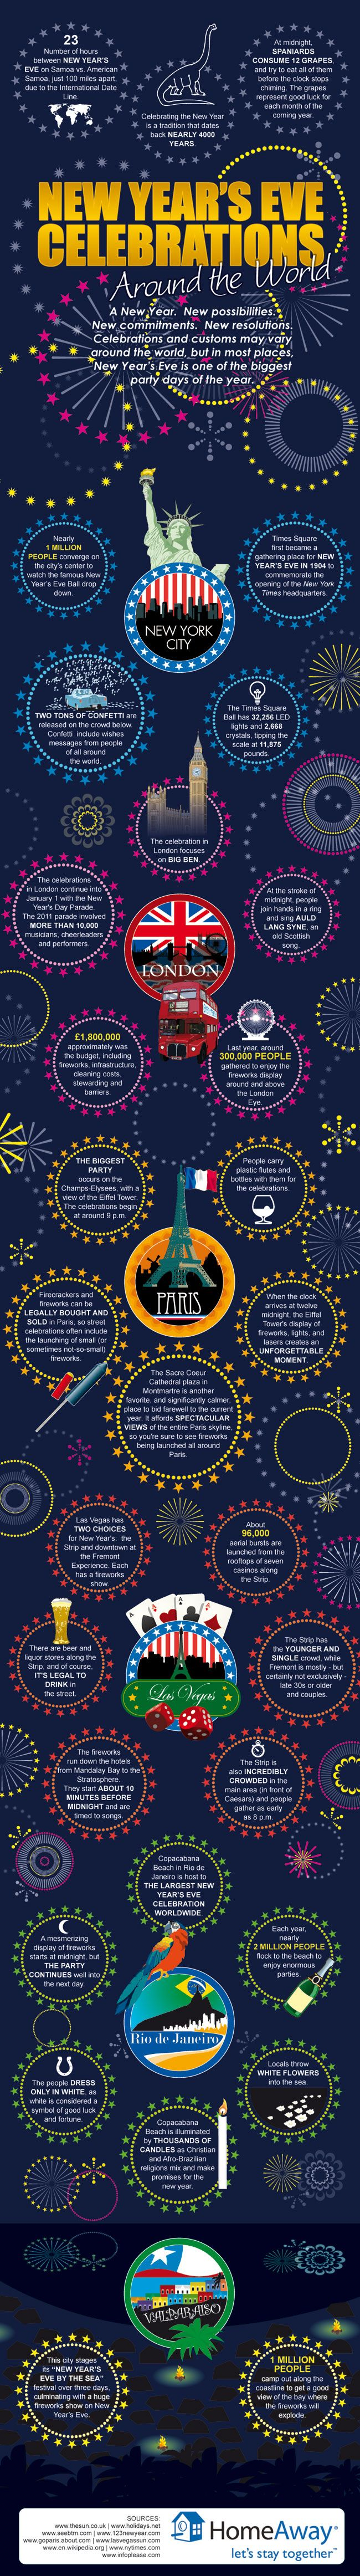 New Year's Eve celebrations around the world infographic